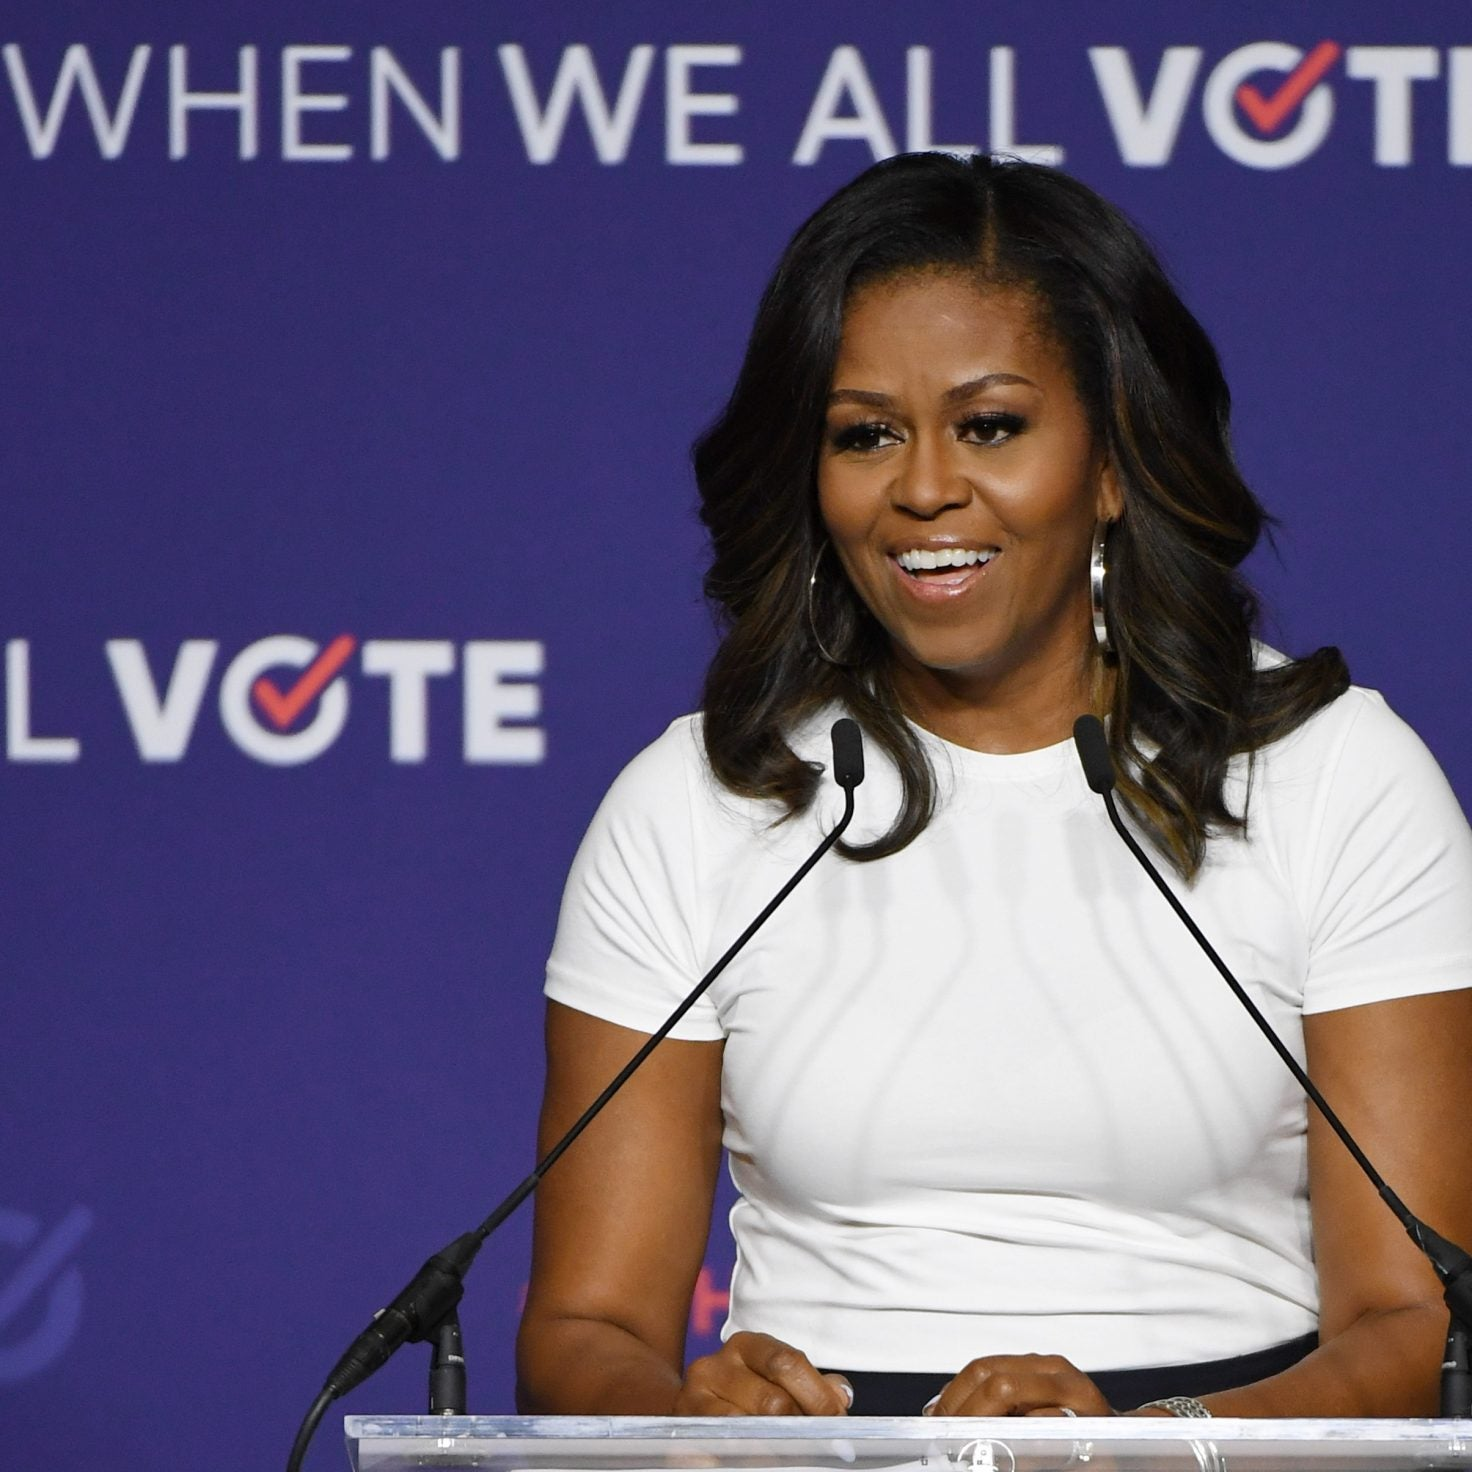 Michelle Obama-Backed Voting Organization Gives High Schools A Chance To Win Money For Prom